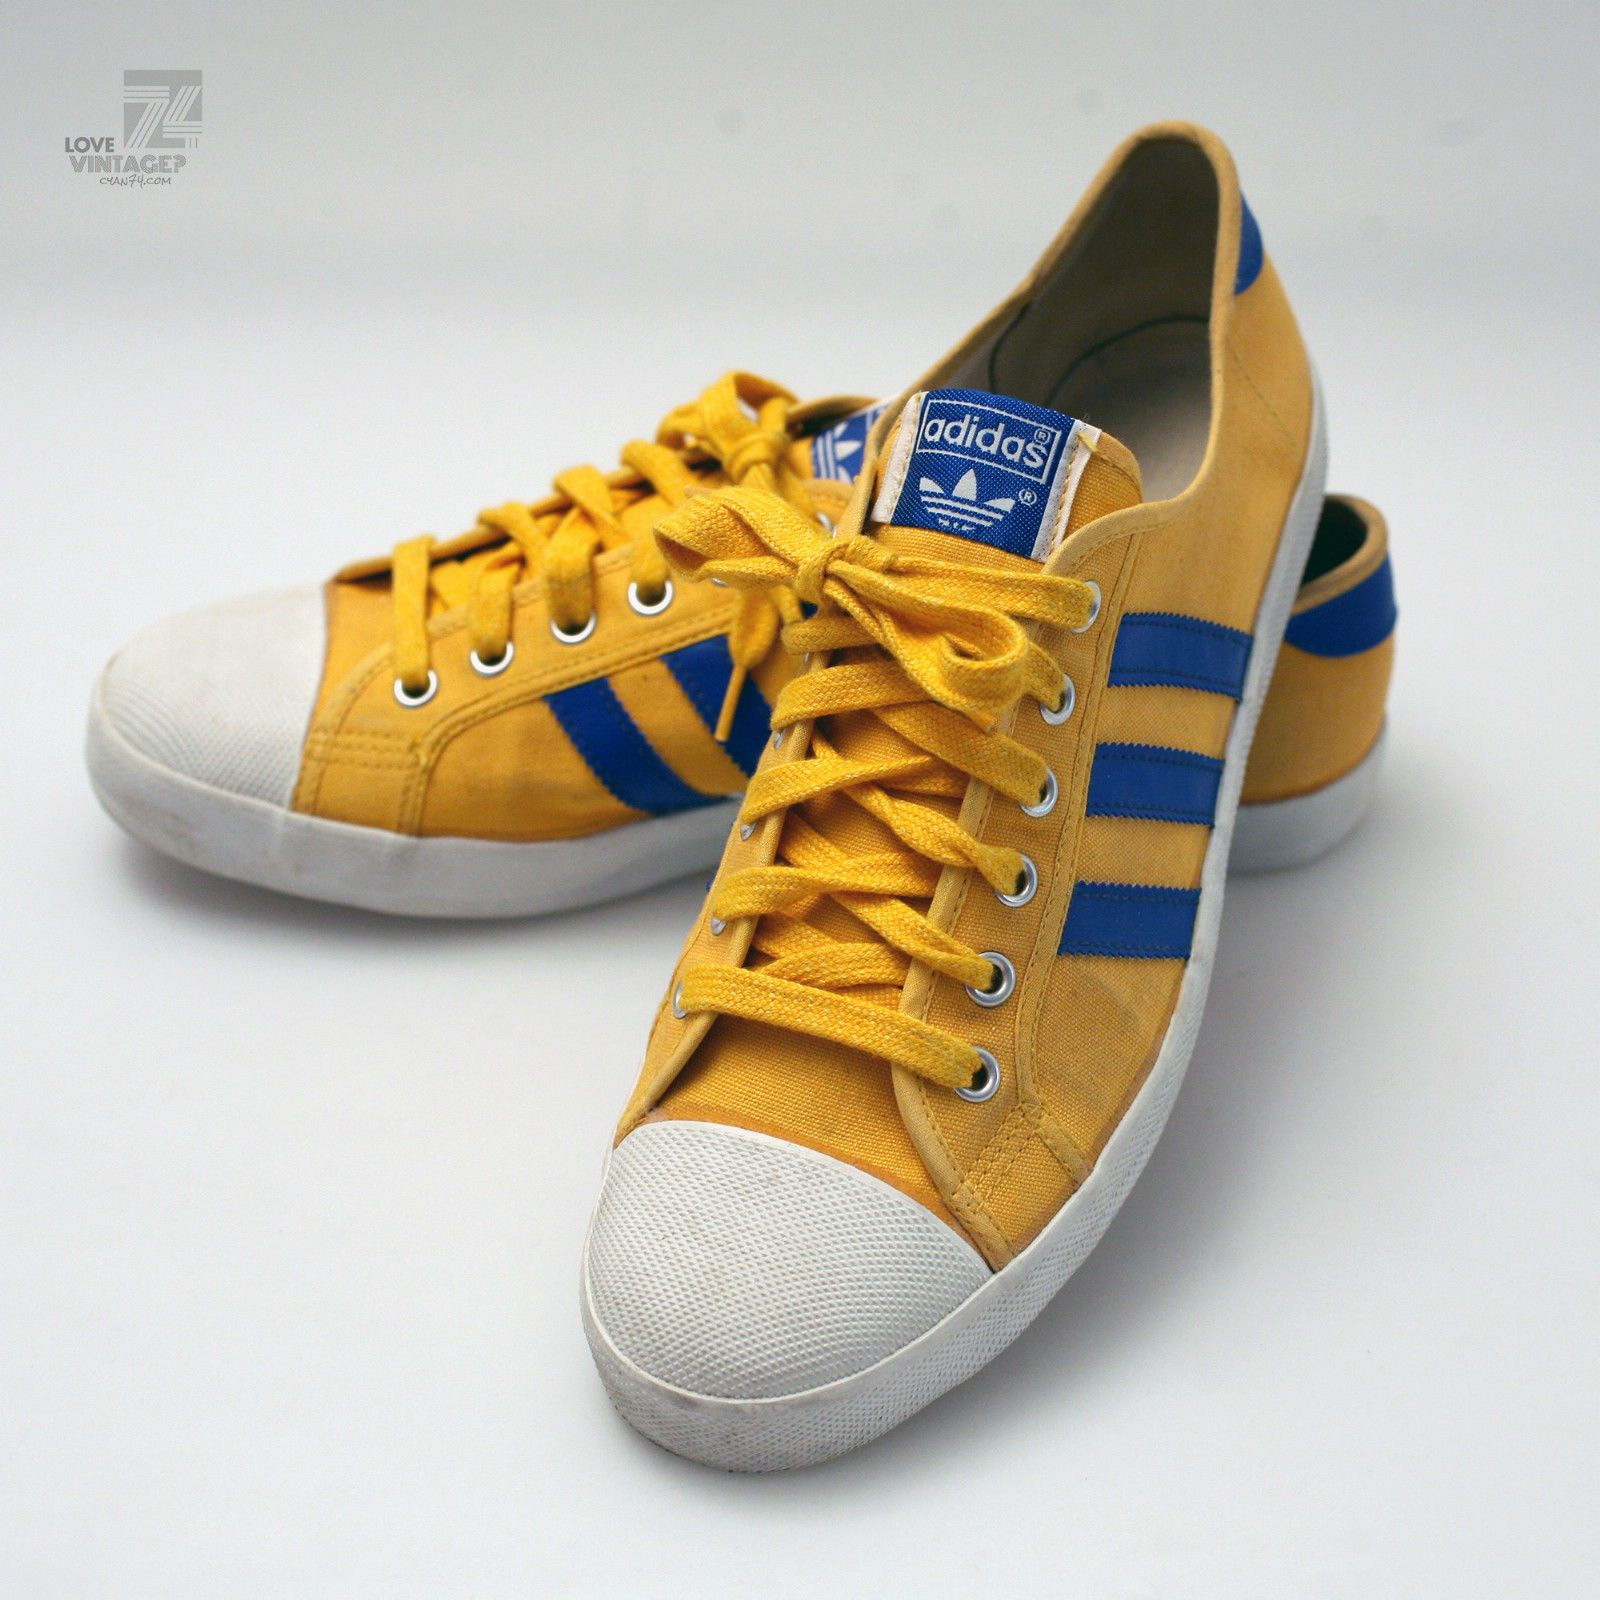 1970s Adidas ADRIA Sneakers Authentic Original Vintage Canvas Turnschuhe  Schuhe | eBay